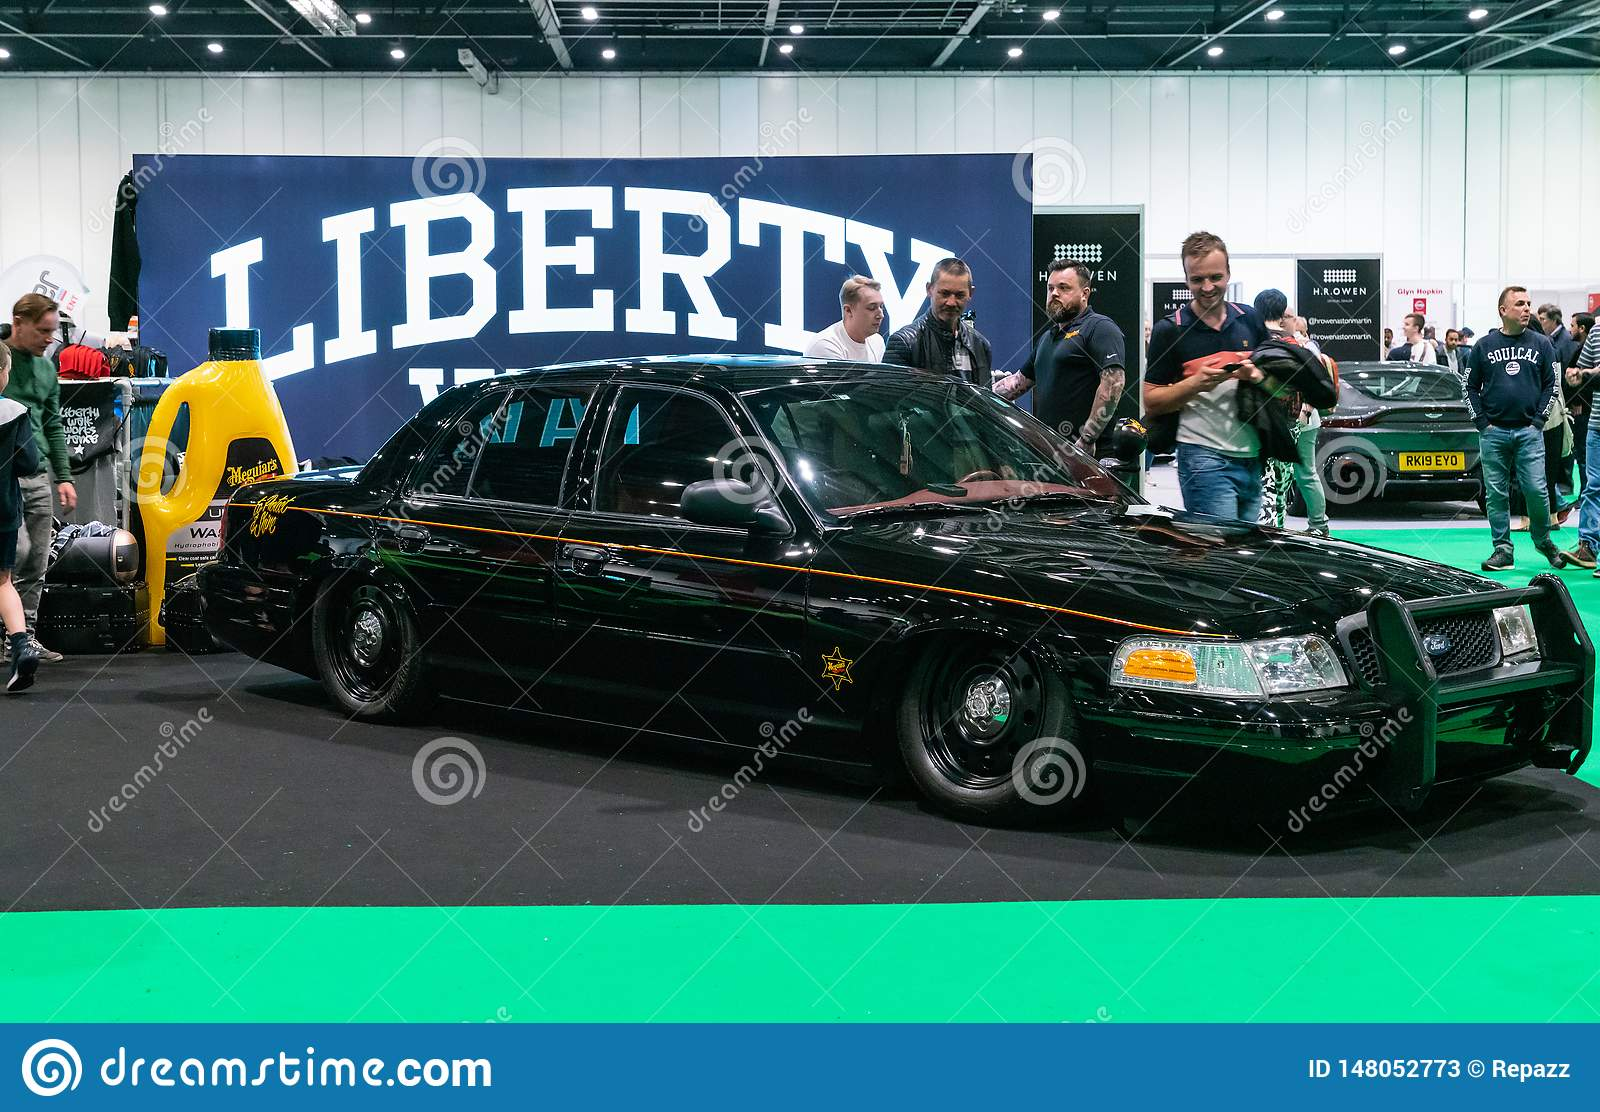 ford crown victoria model at london motor show 2019 editorial stock photo image of interceptor suspension 148052773 https www dreamstime com th may london uk black lowered iconic american police interceptor car ford crown victoria motor show model image148052773